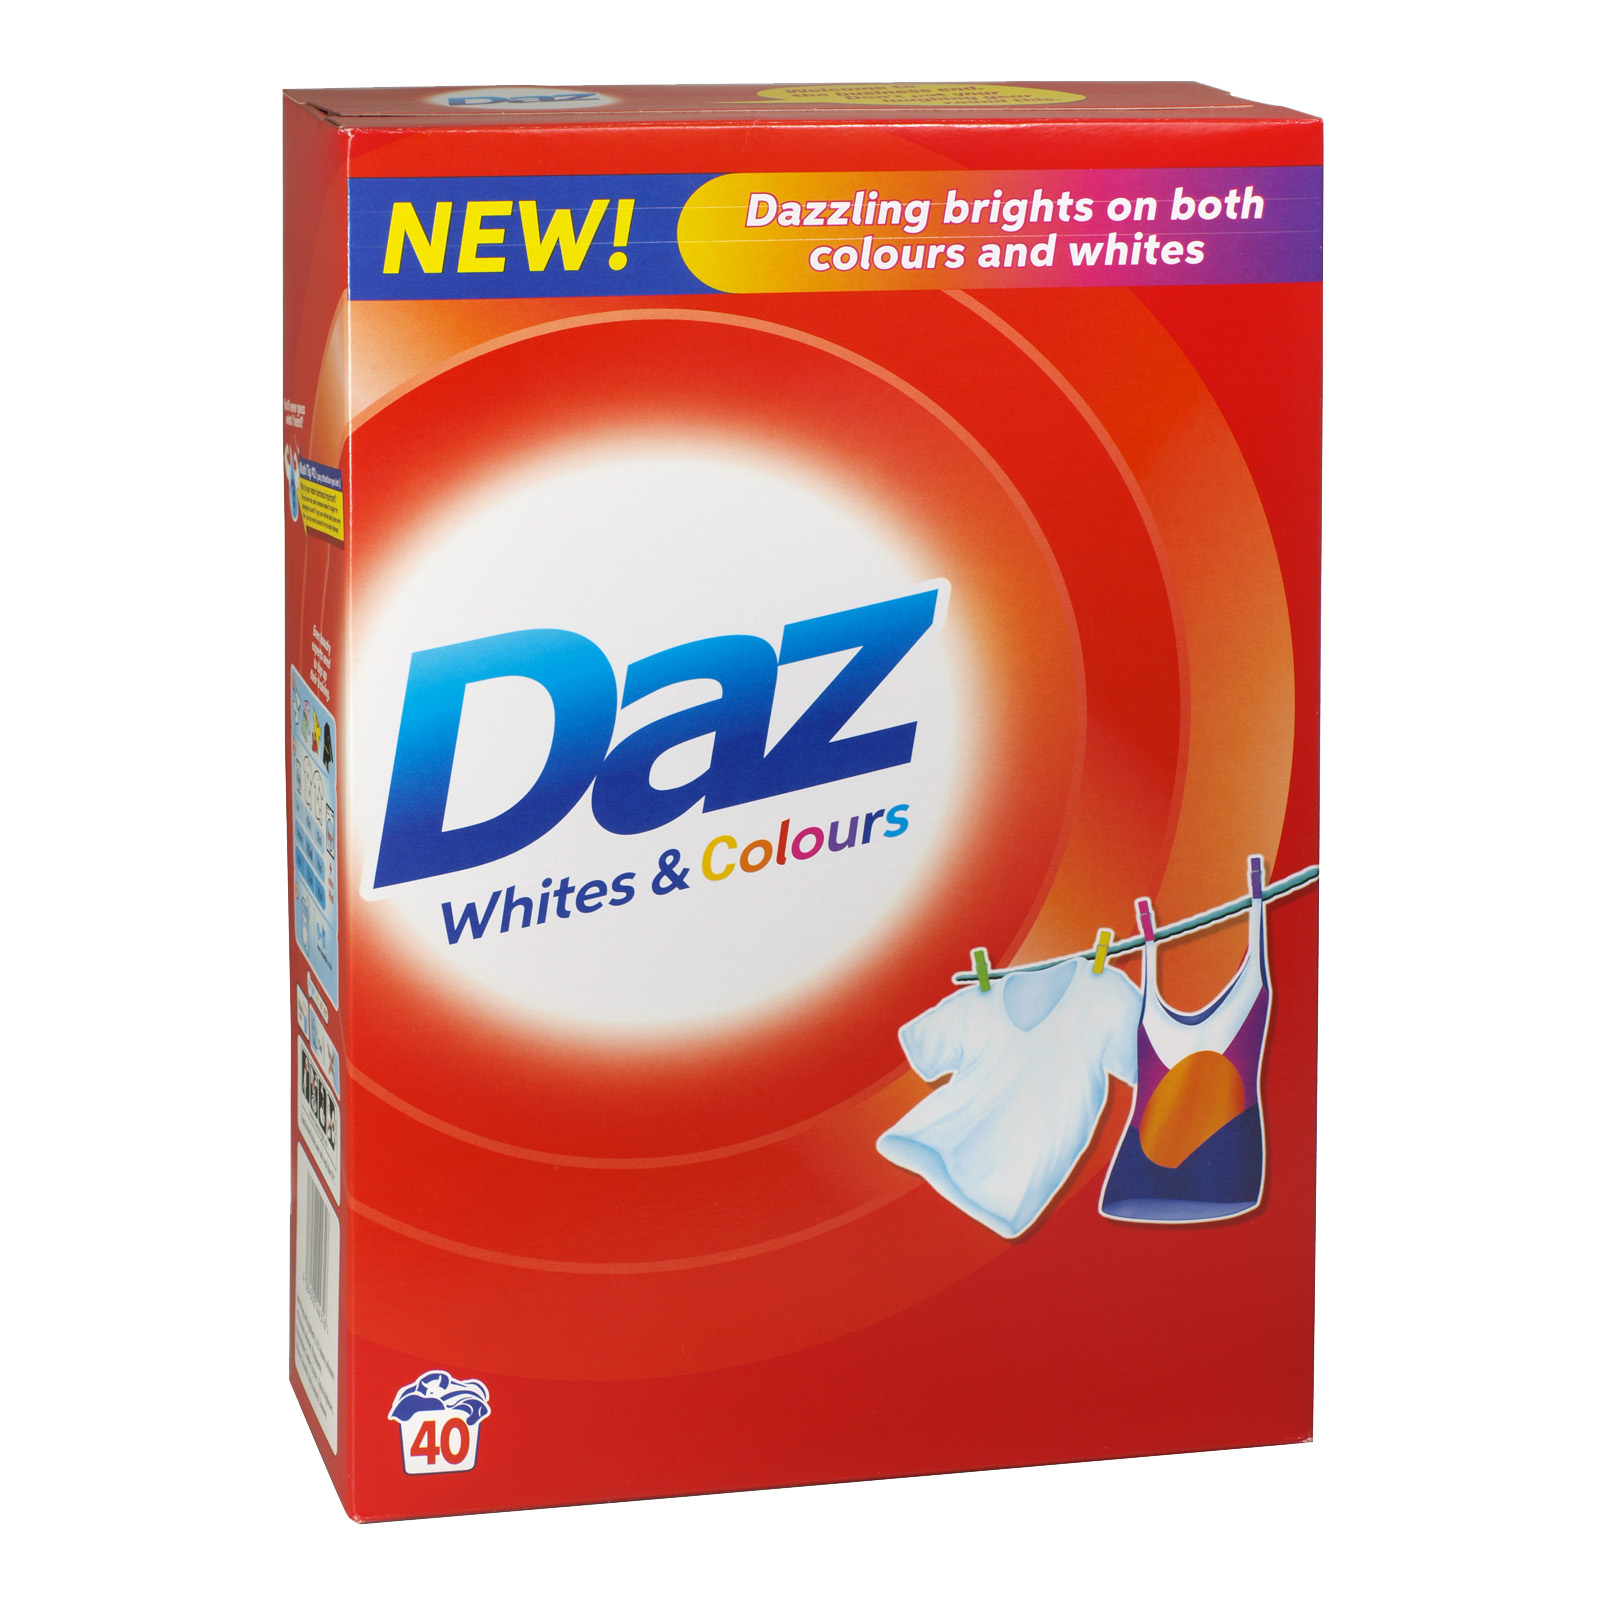 DAZ POWDER 40 WASH 2.6KG ORIGINAL X4